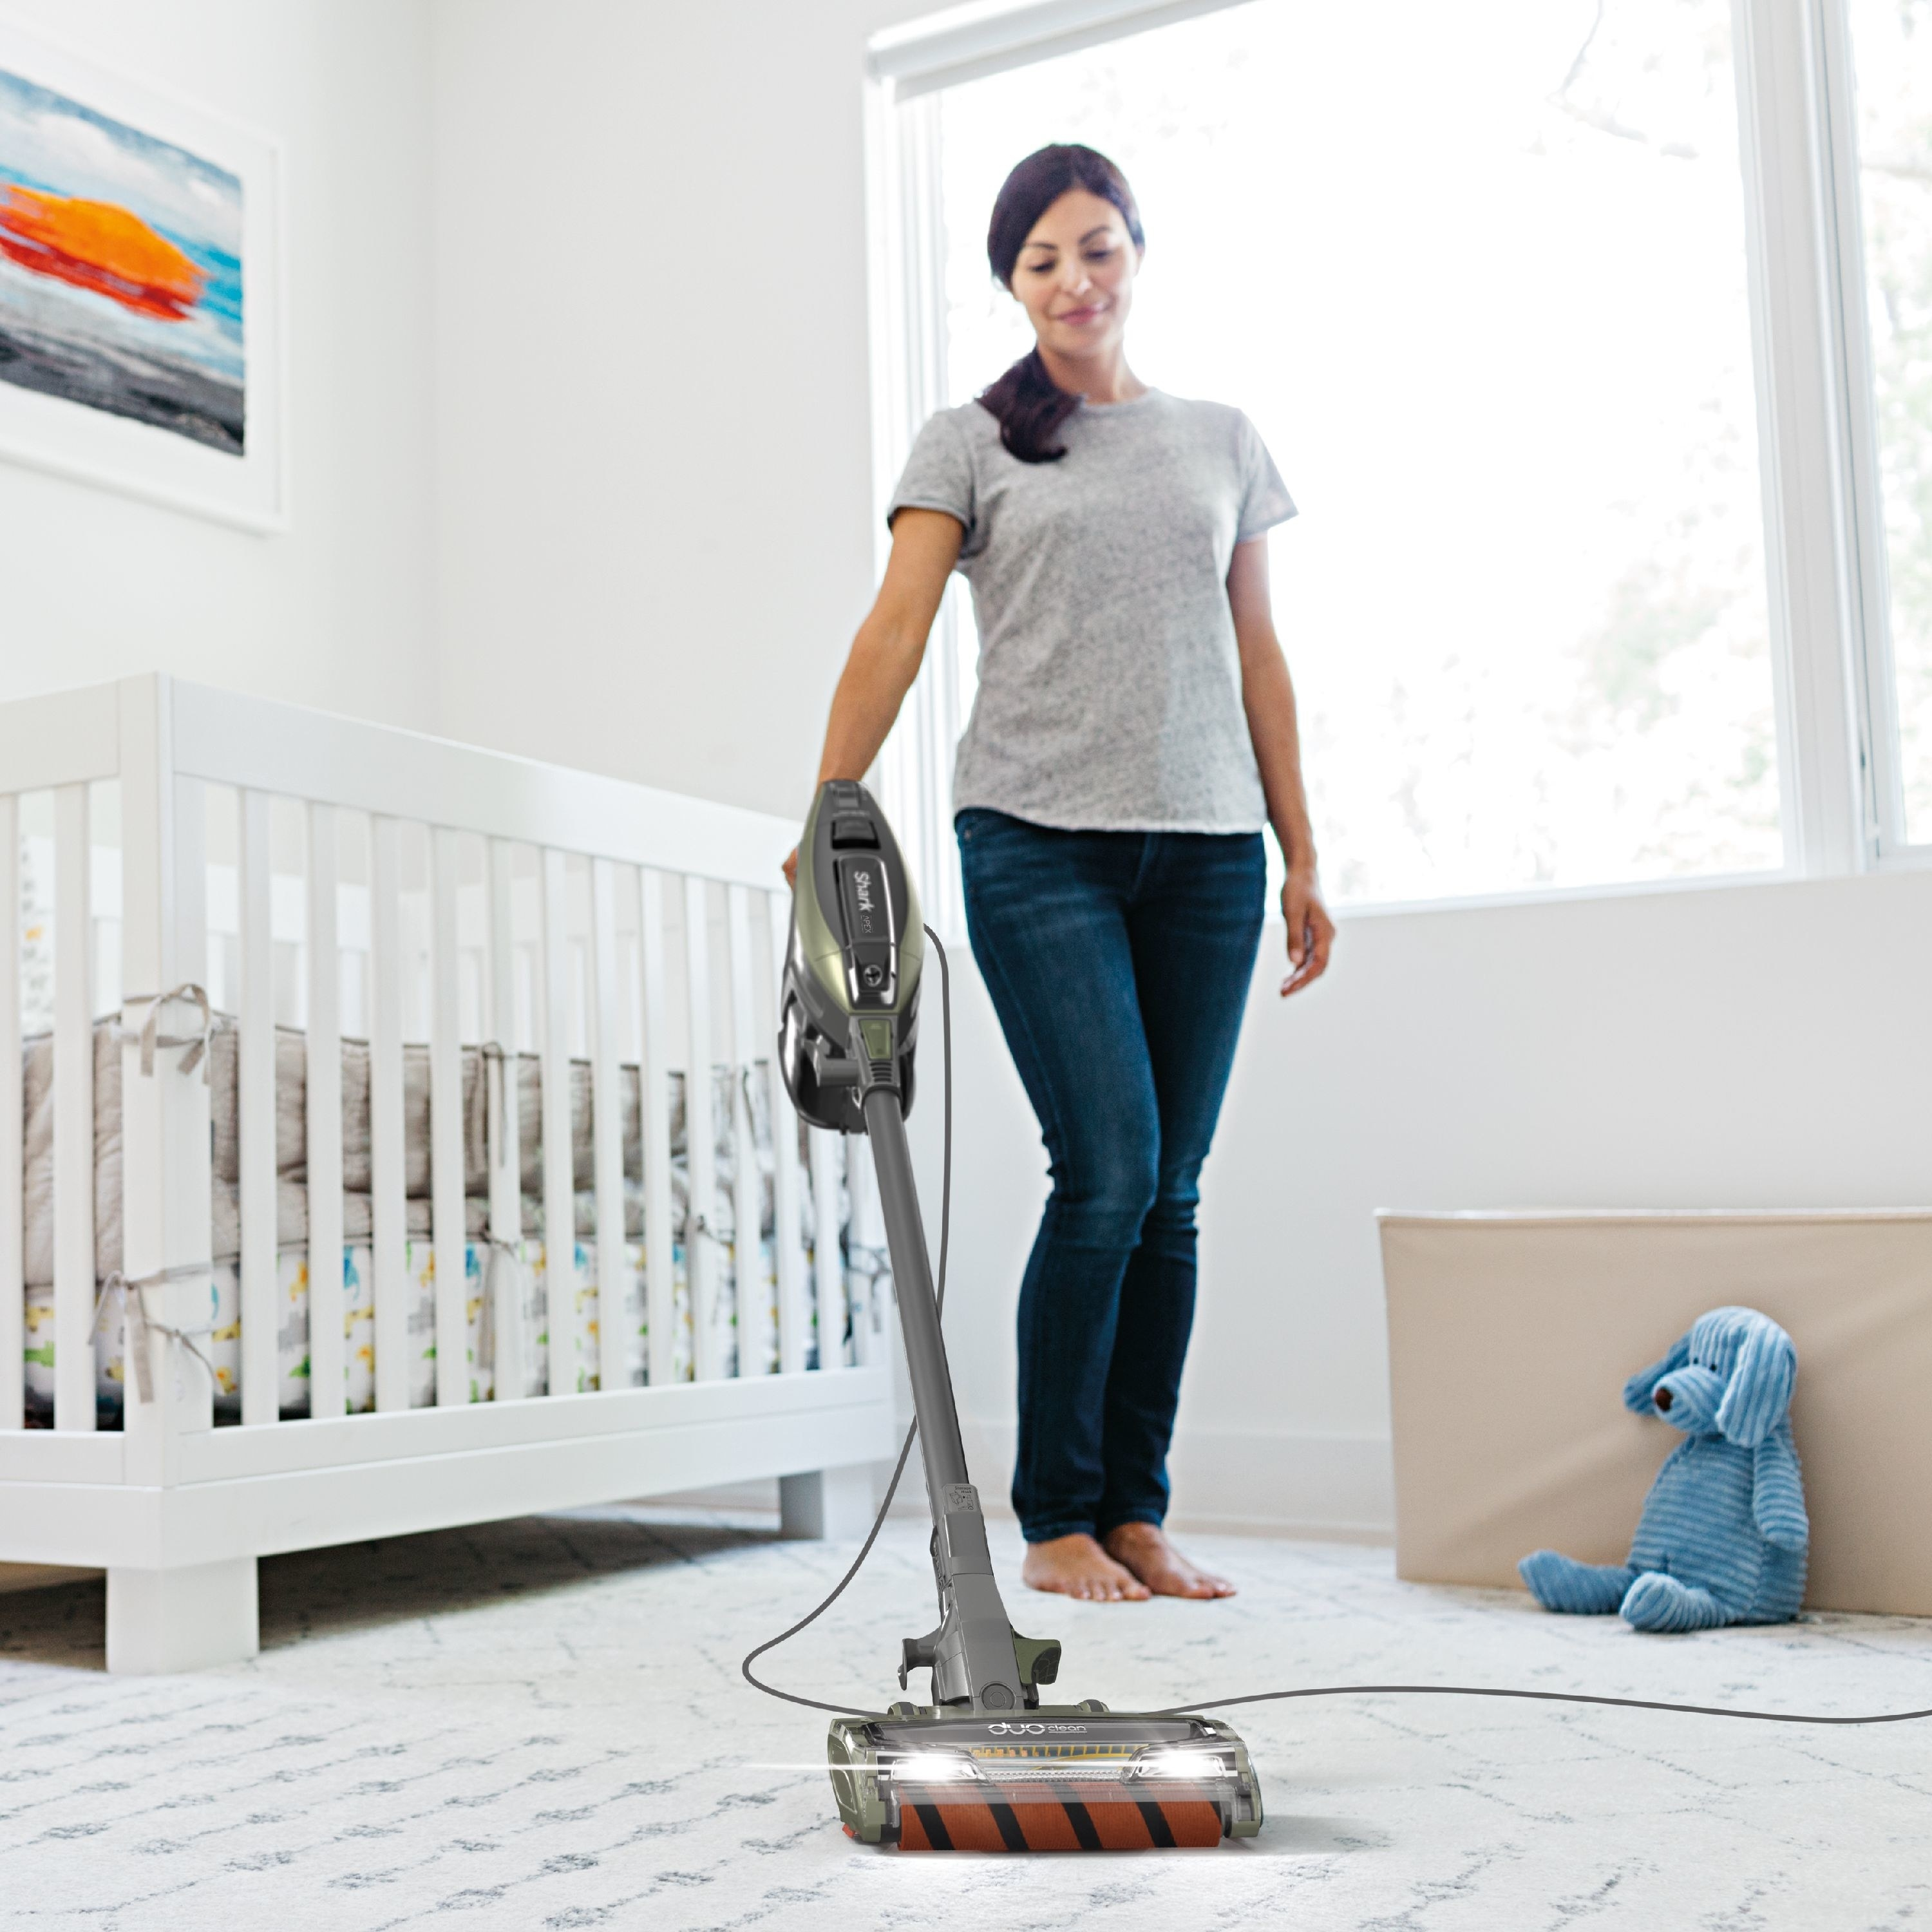 person using a corded stick vacuum to clean a rug